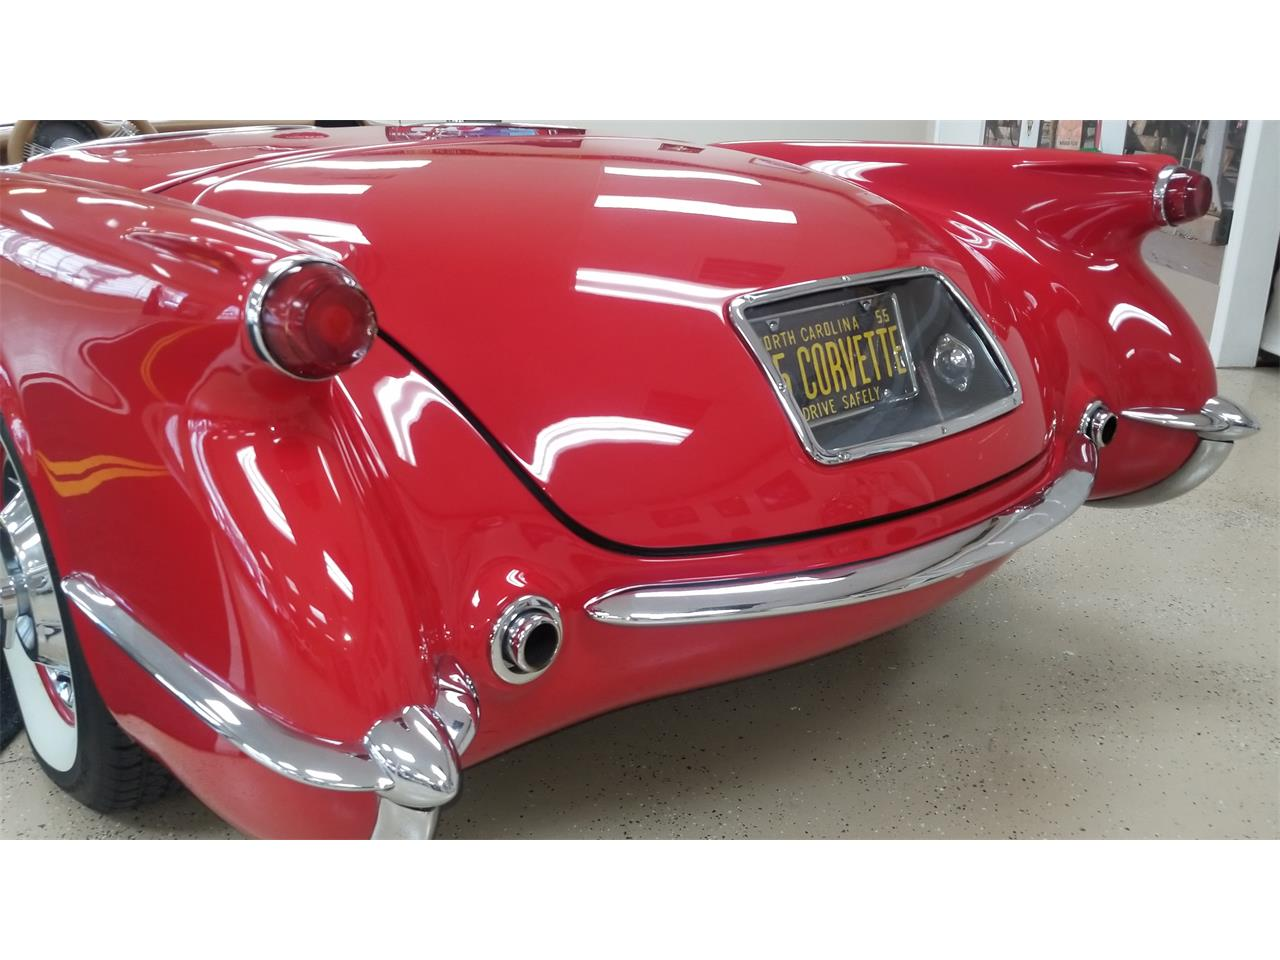 Large Picture of Classic '55 Corvette located in North Carolina - $52,000.00 - QKKE